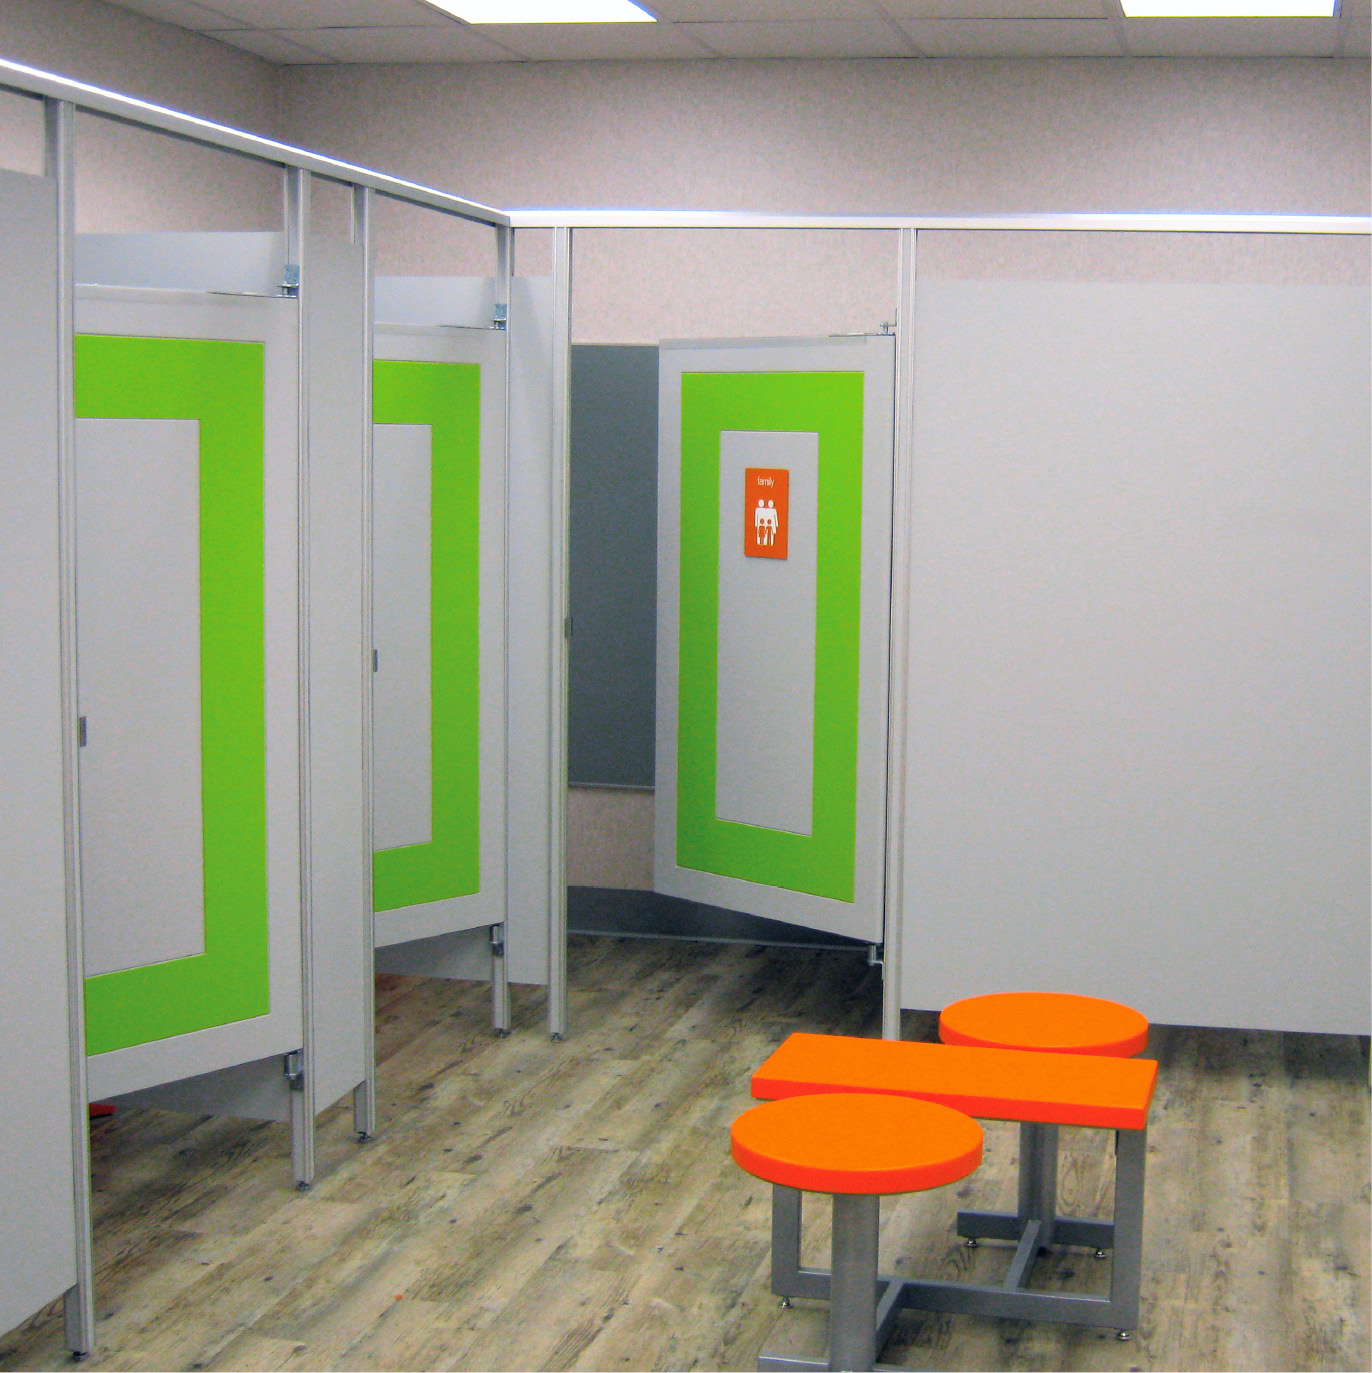 FITTING ROOMS Retail Wall Panels Retail Fixtures Slatwall Systems